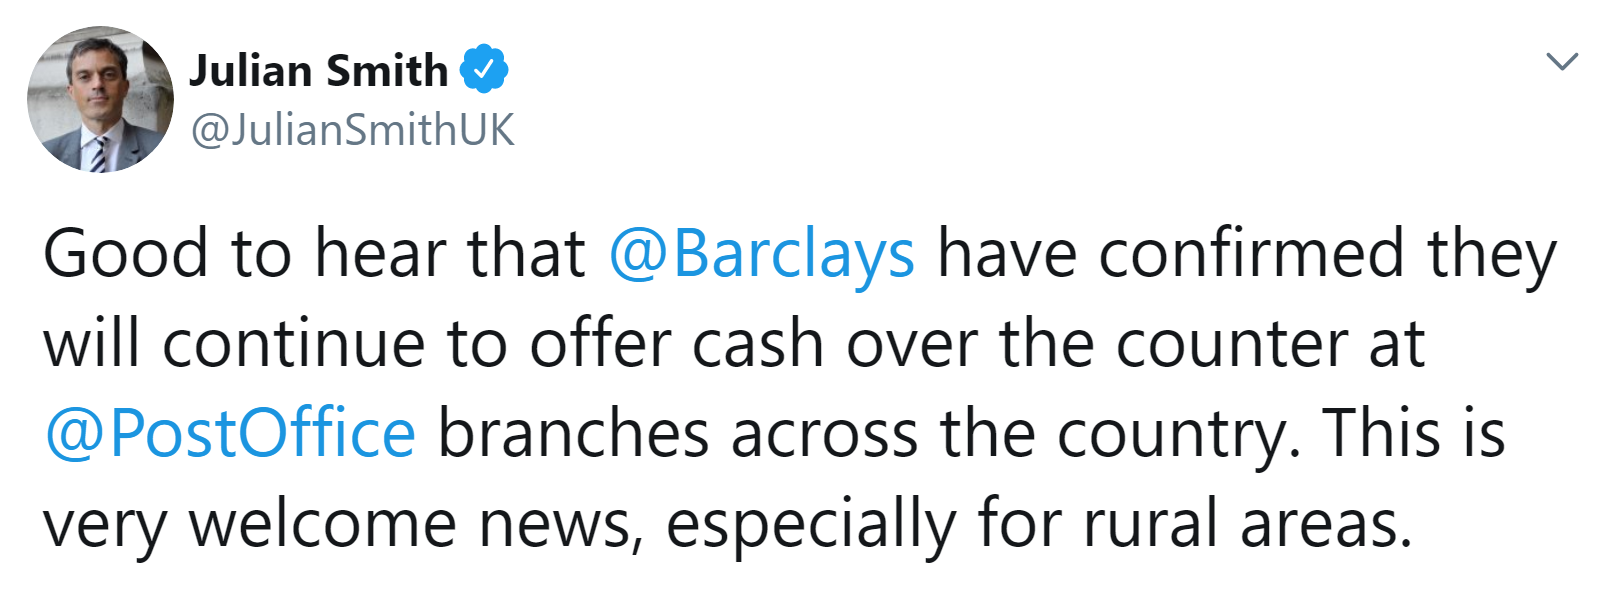 Good to hear that Baraclays have confirmed they will continue to offer cash over the counter at Post Office branches across the country. This is very welcome news, especially for rural areas.